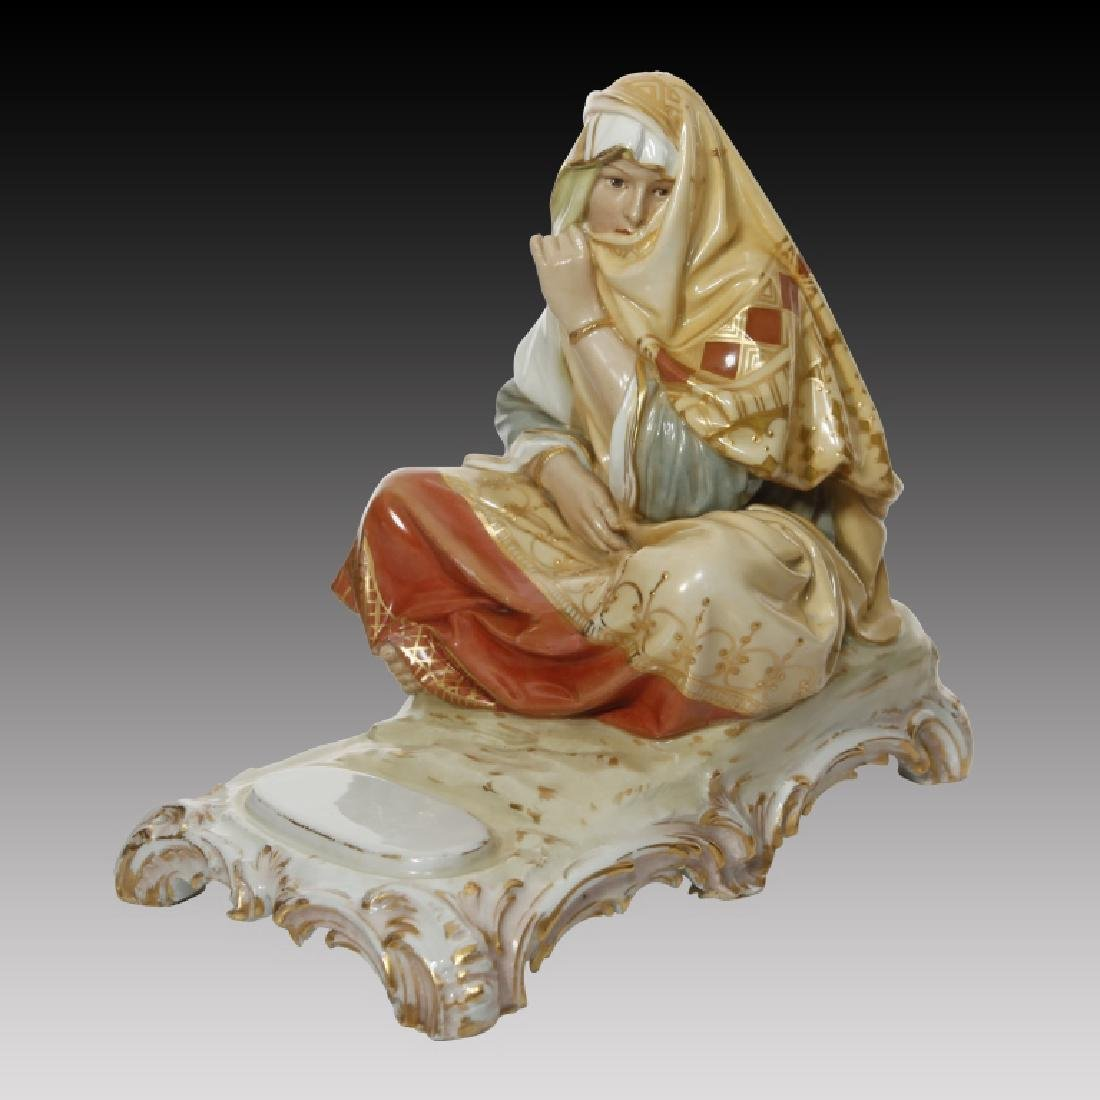 KPM Polychrome Figure of Woman in Arab Costume